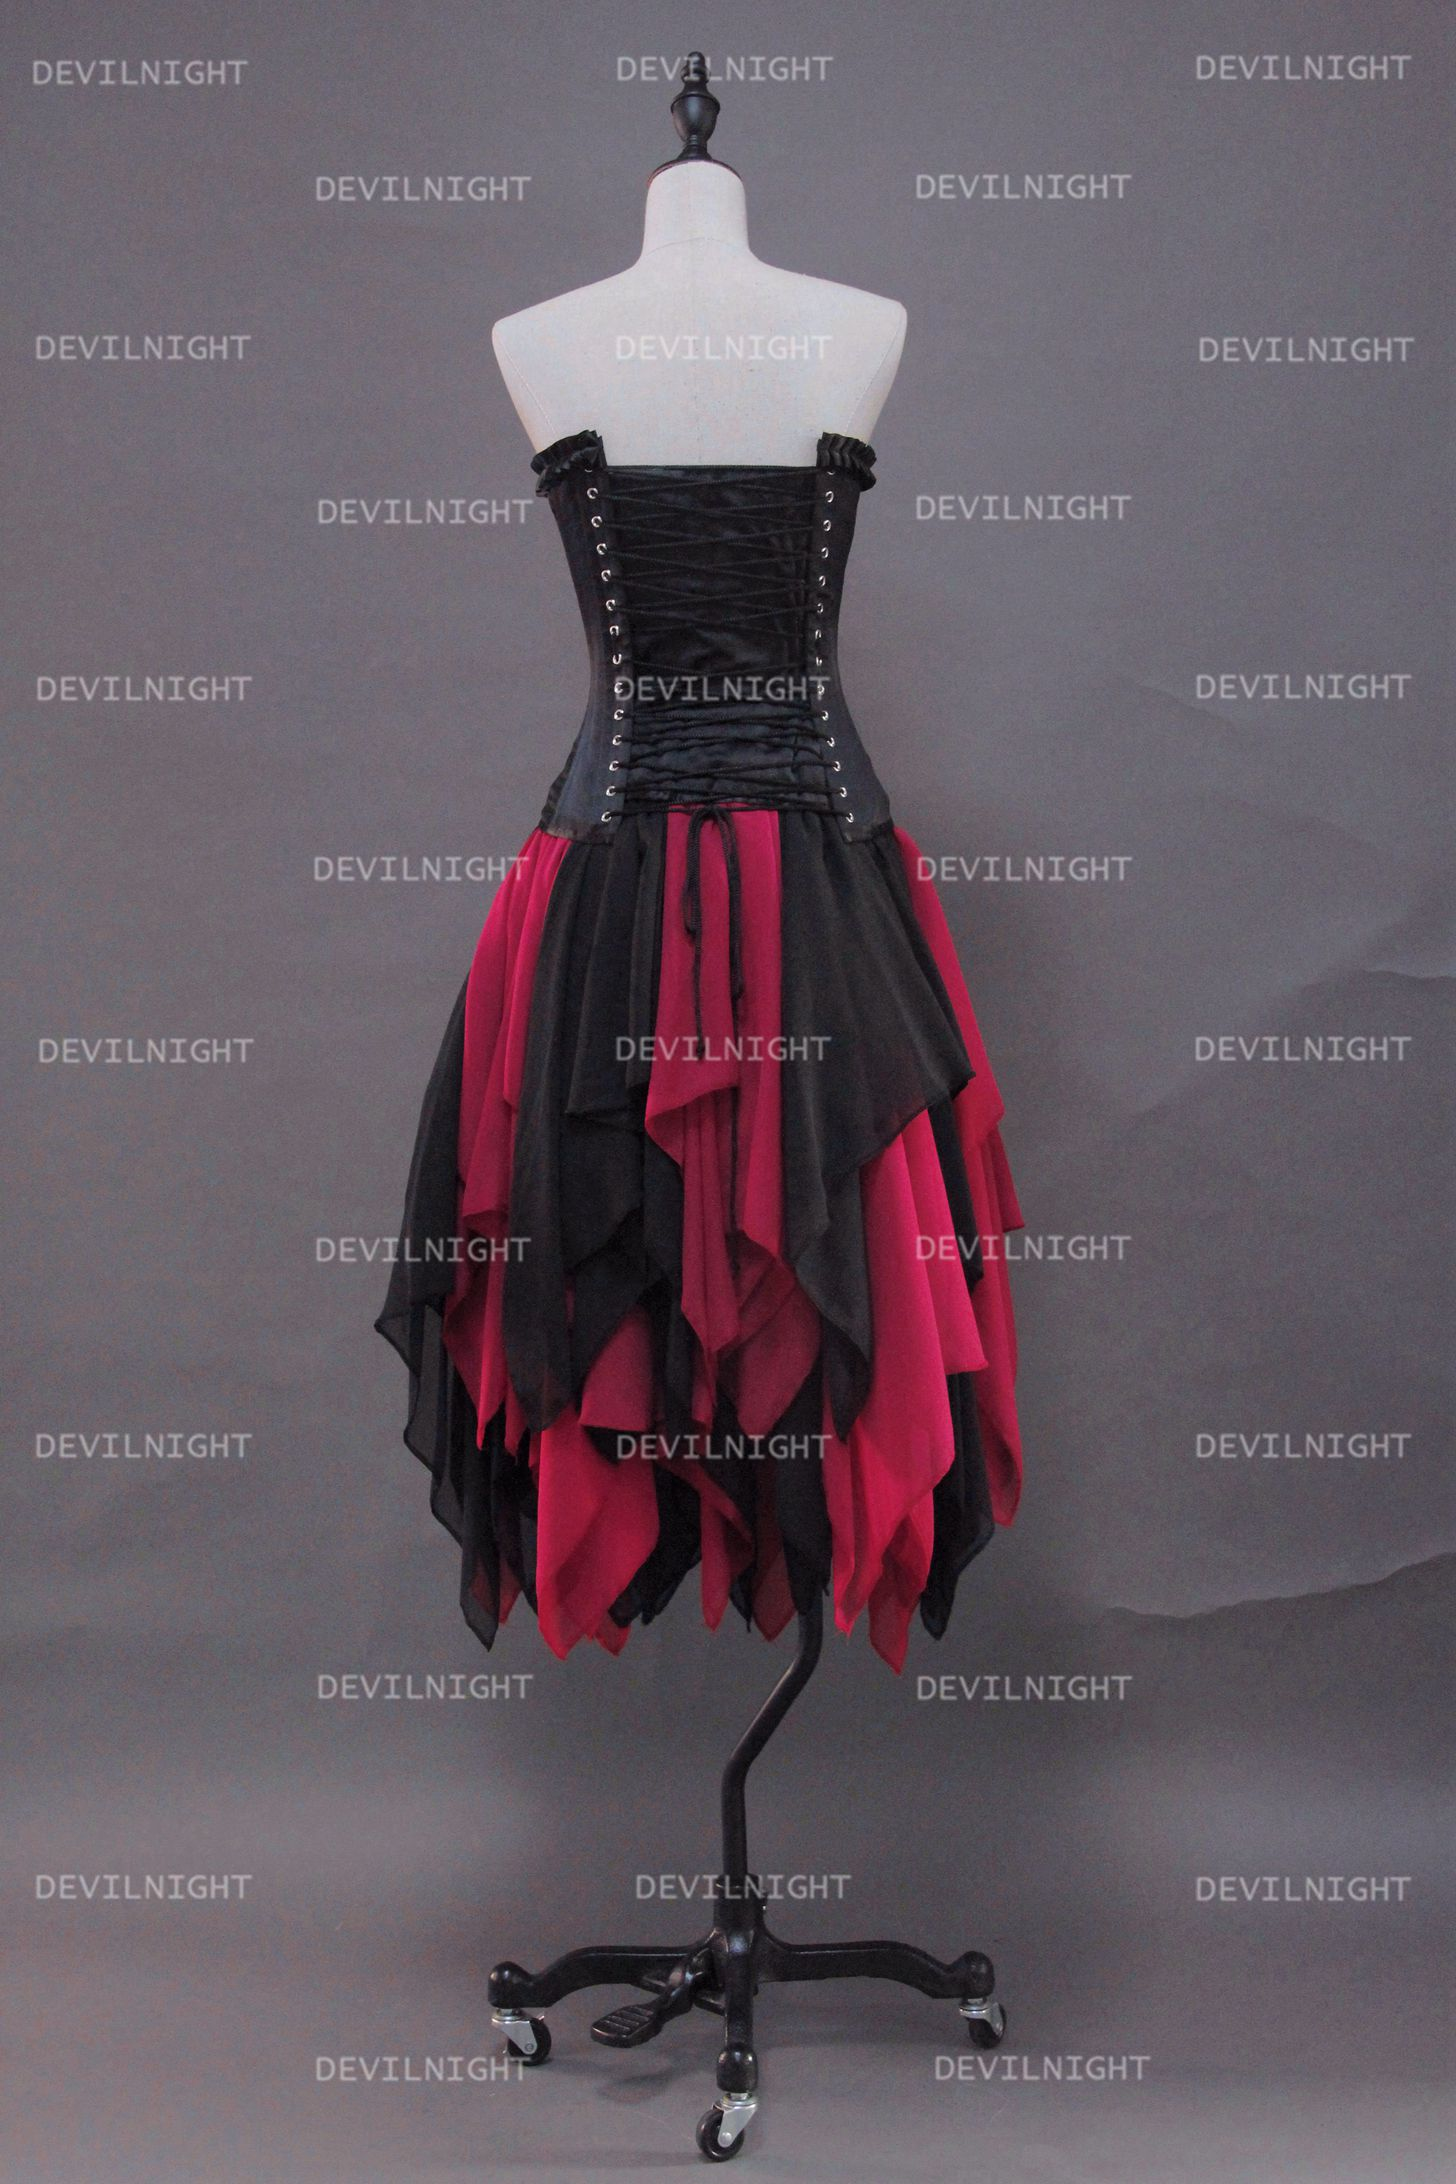 fashion_black_and_red_gothic_corset_irregular_burlesque_prom_party_dress_dresses_3.jpg